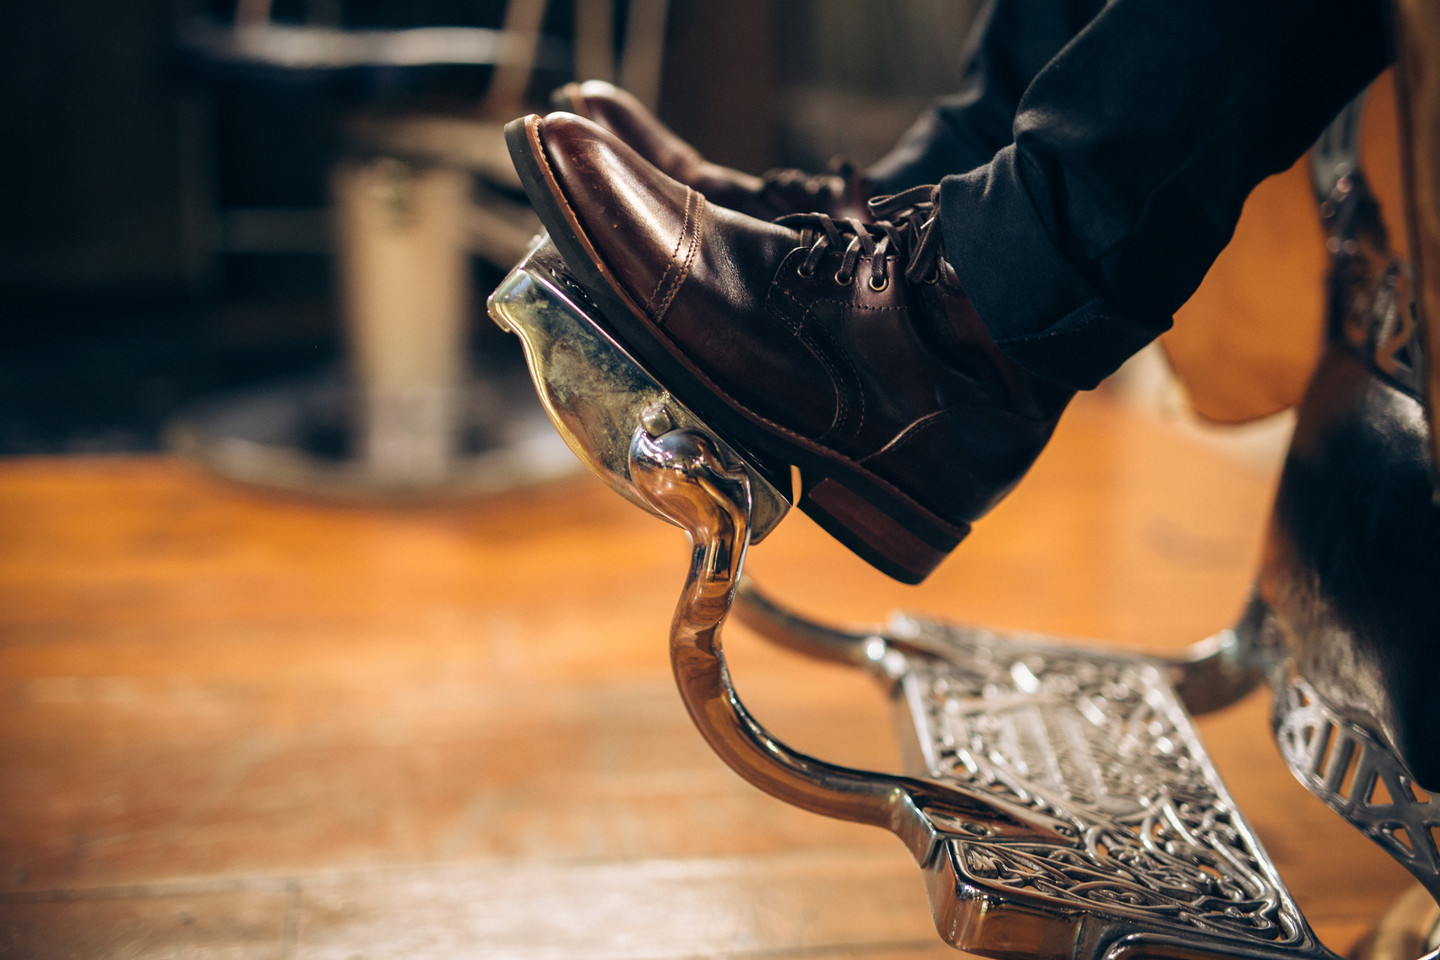 Boots on Footrest of Antique Barber Chair